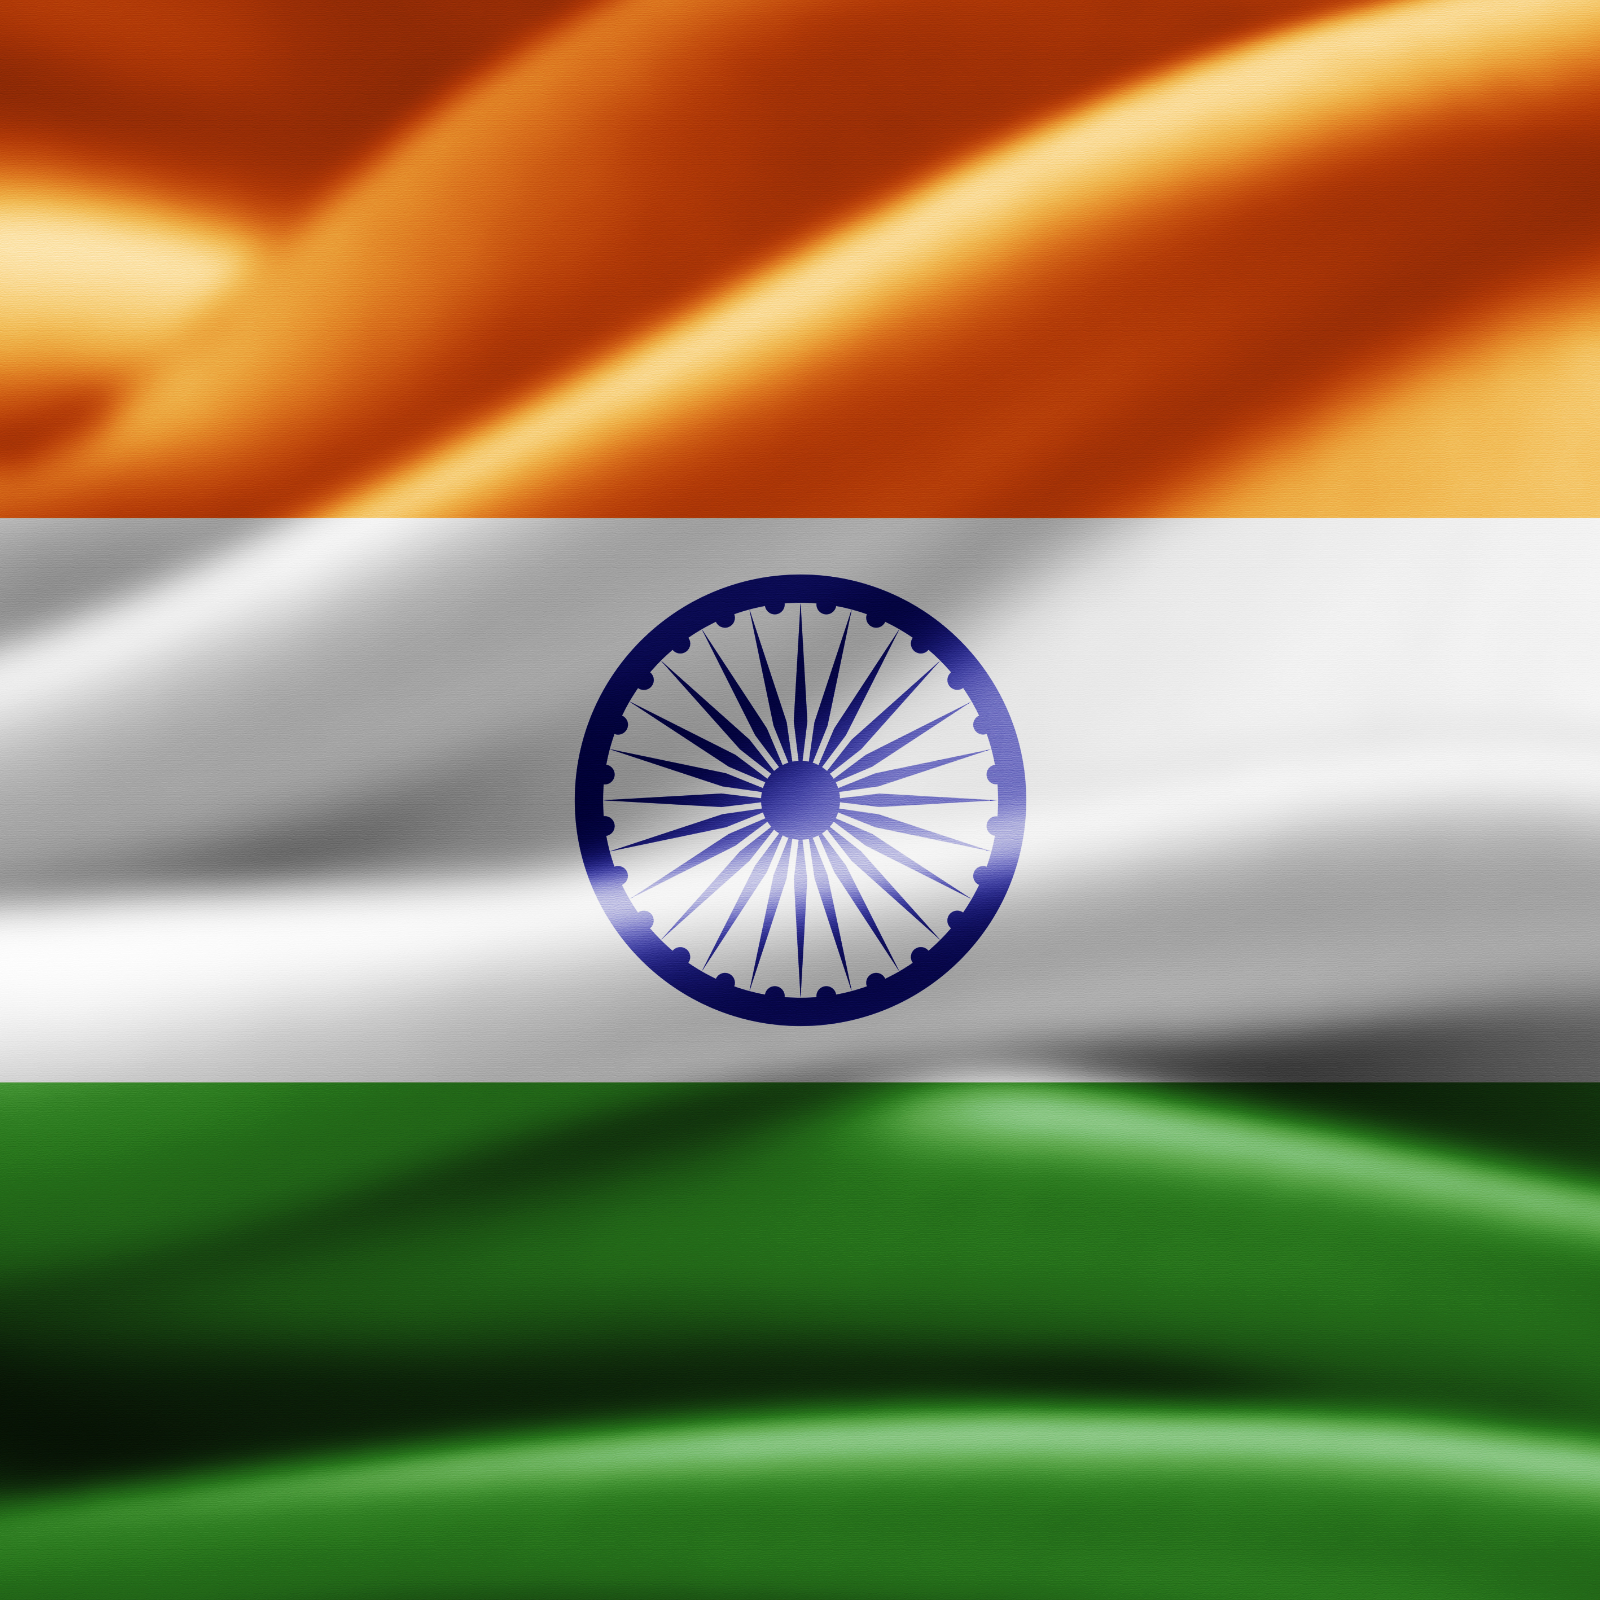 Indian Government Invites Law Firm to Present Crypto Regulatory Proposal With Self-Regulation